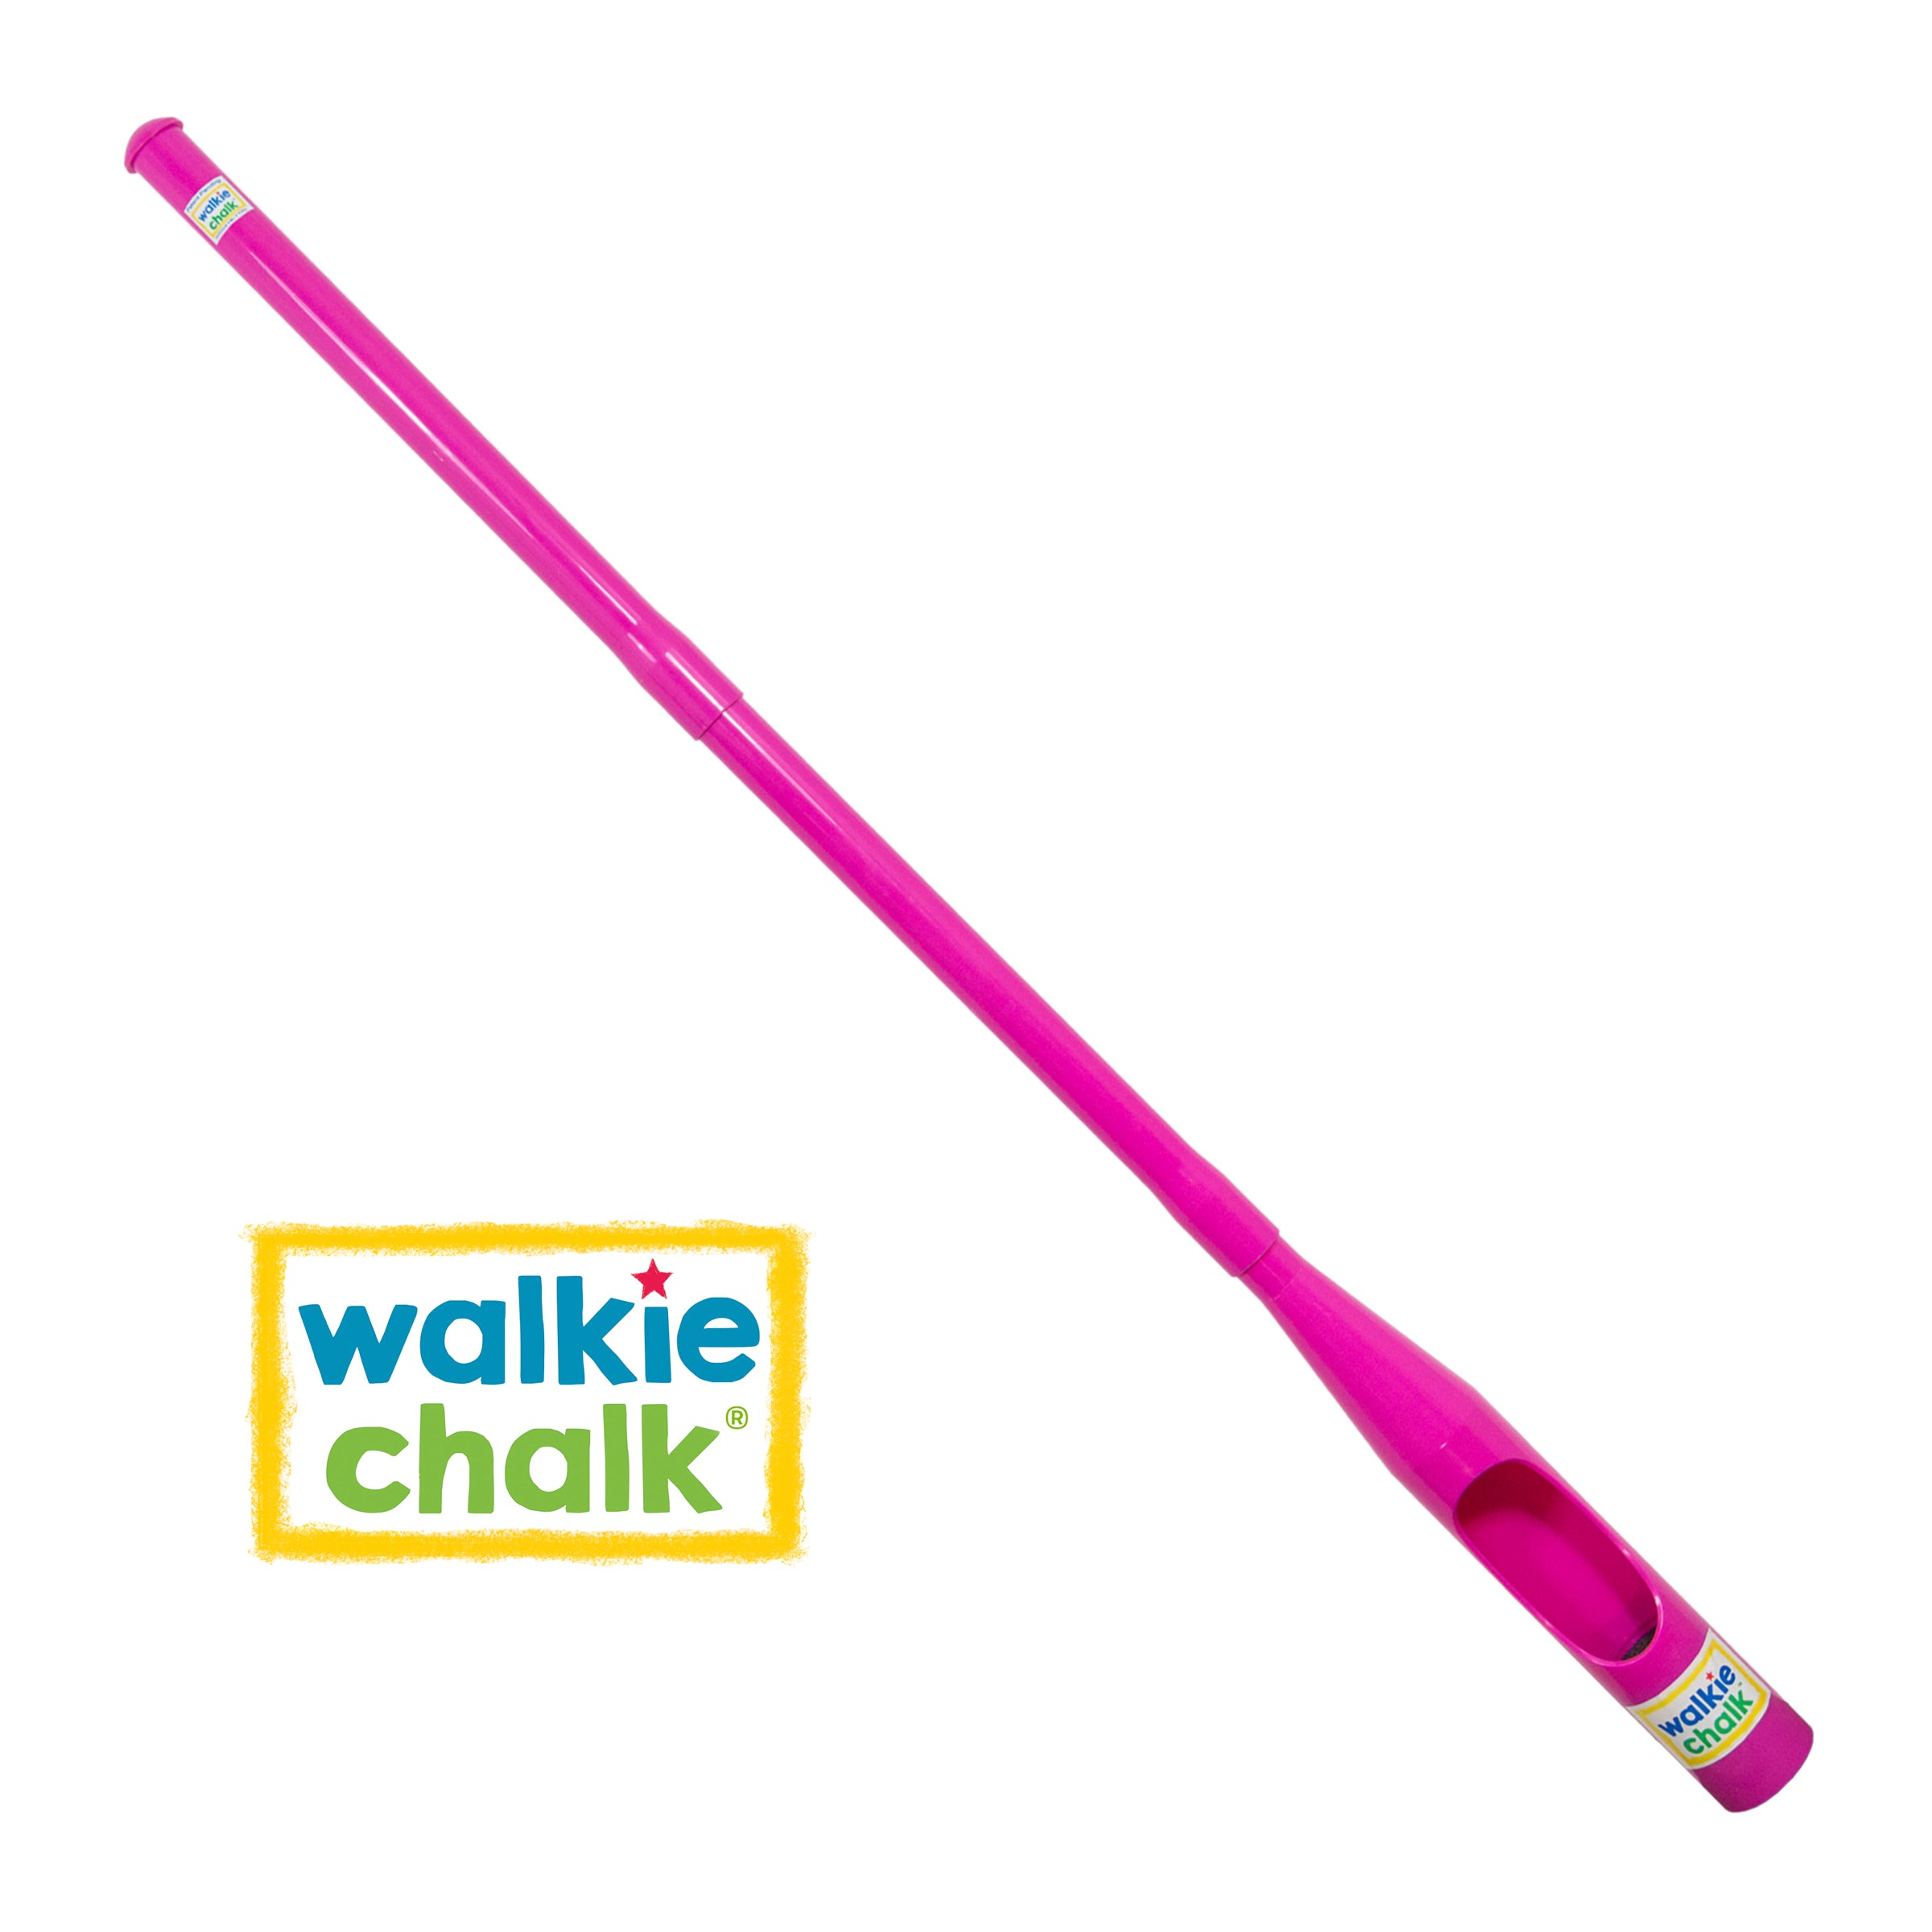 Walkie Chalk Sidewalk Chalk Holder Poppin_Pink